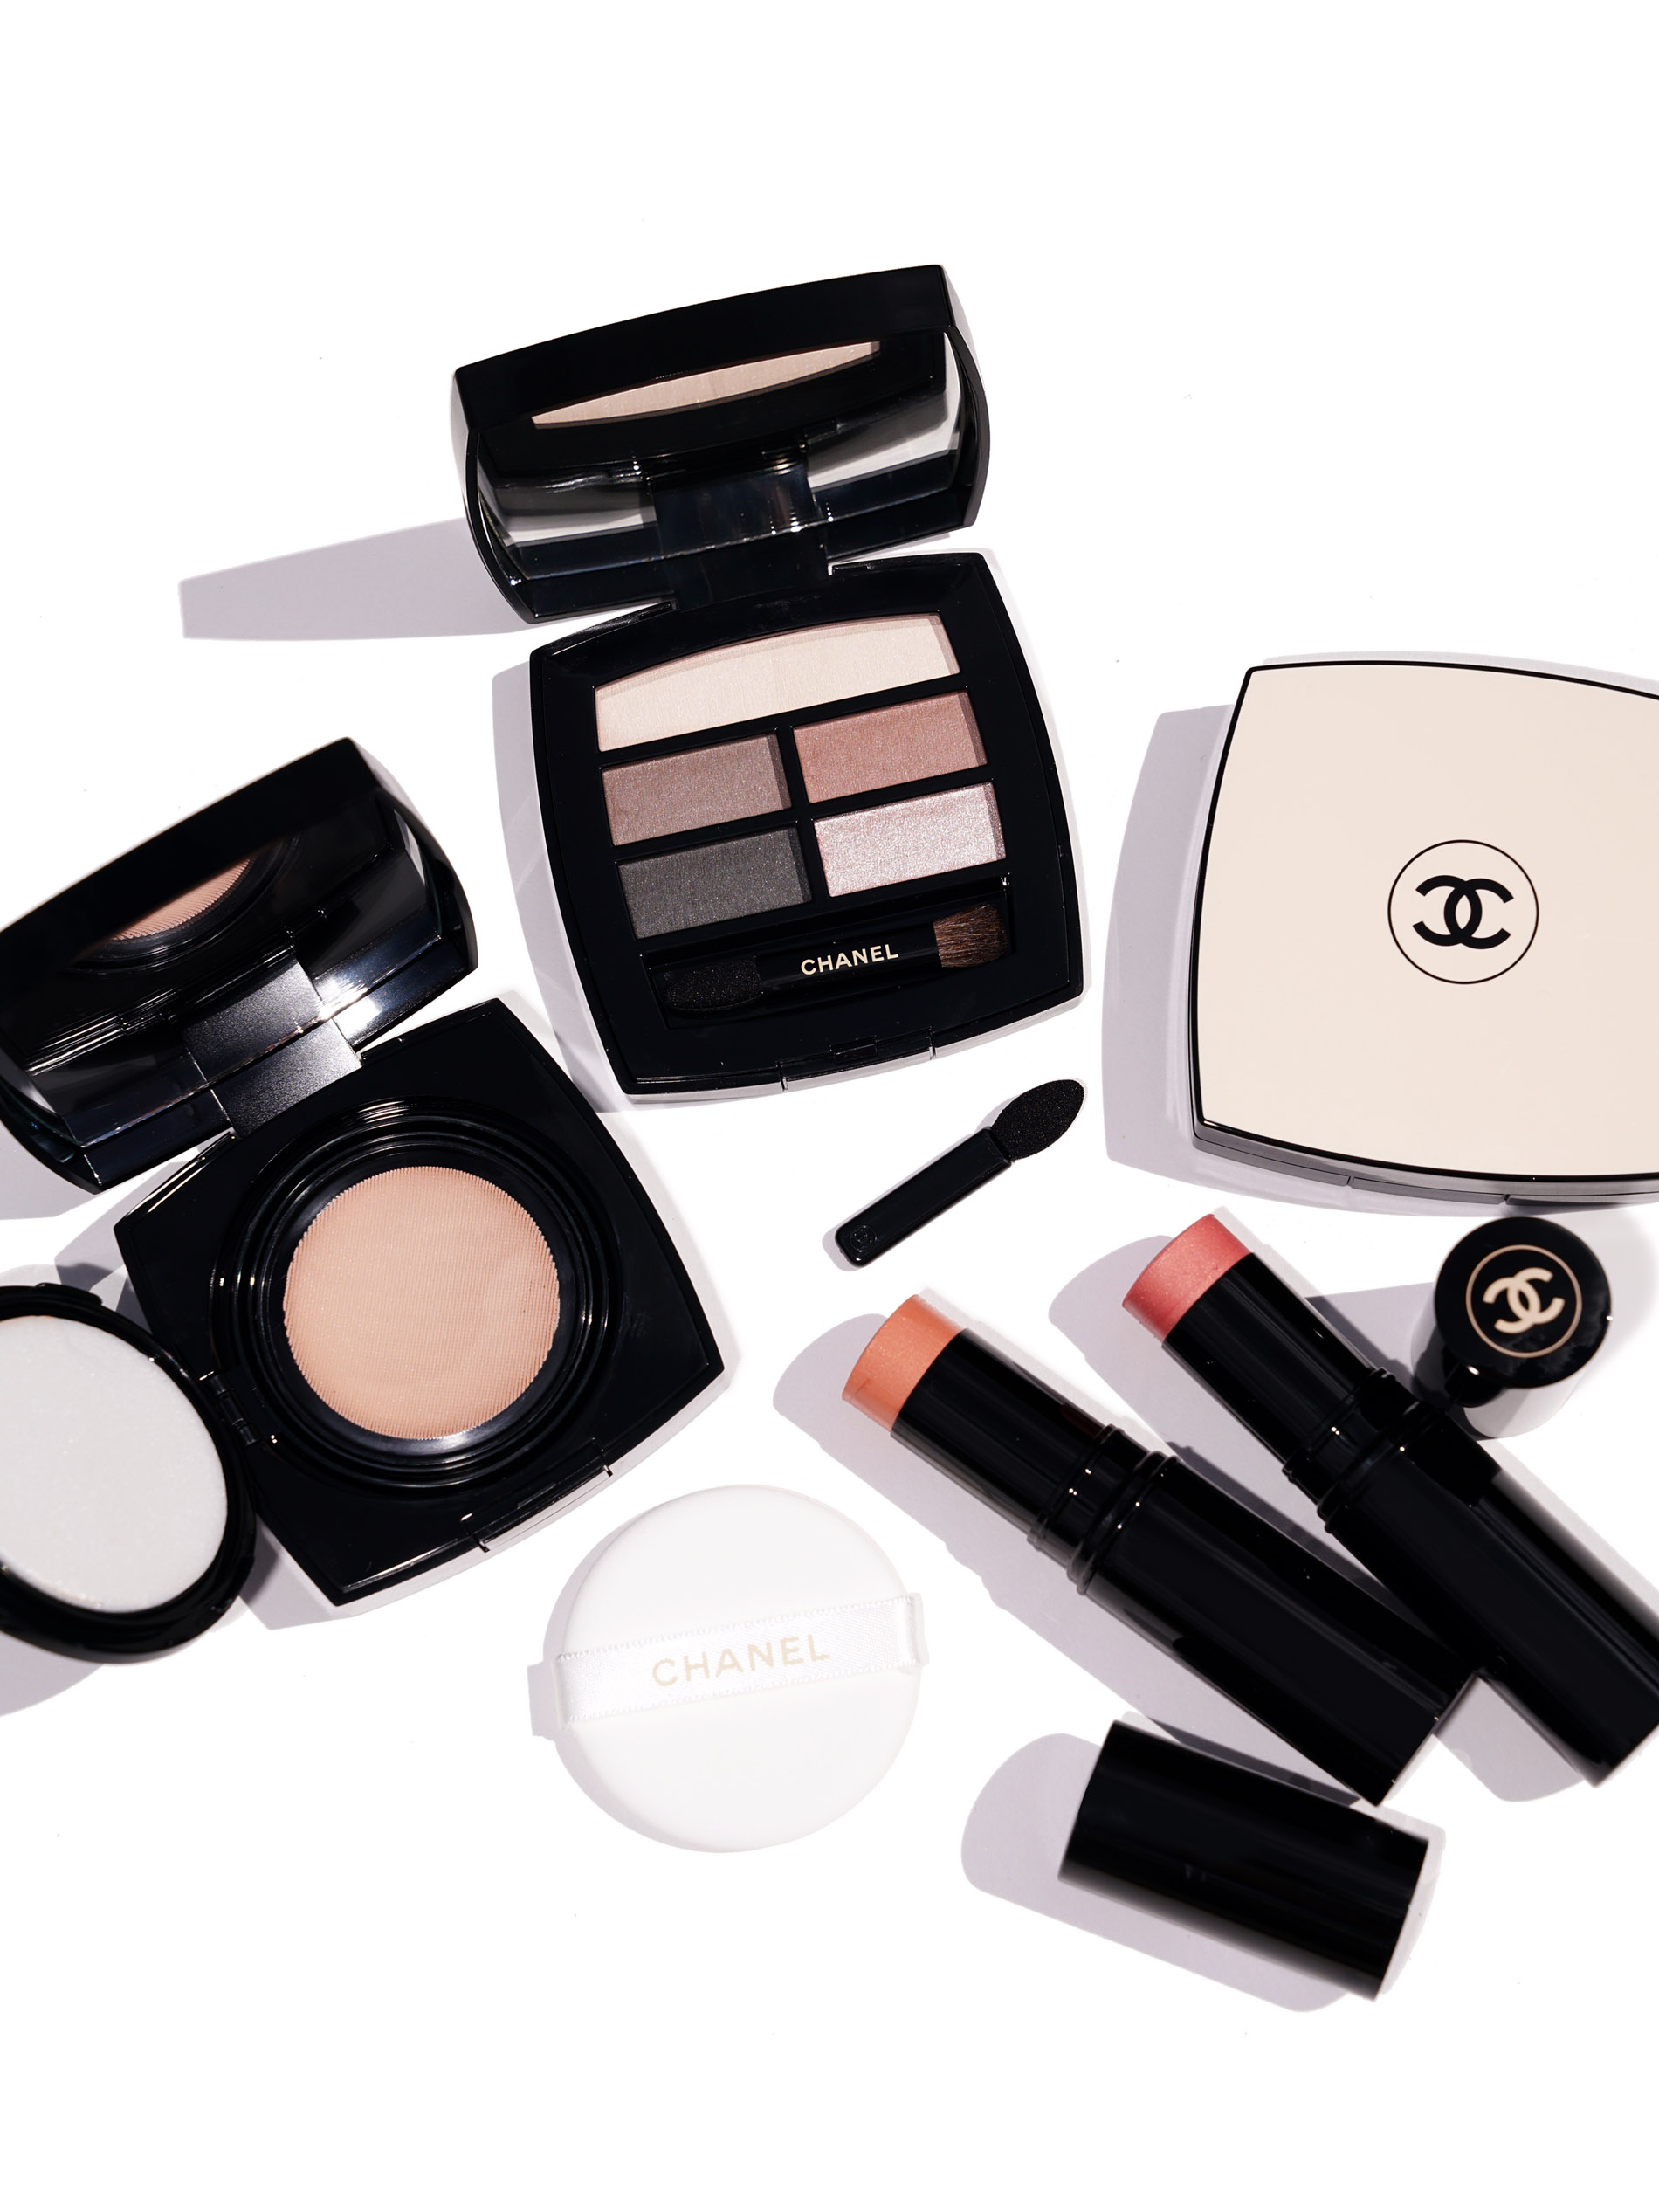 Chanel Makeup Brushes New Design: Chanel Les Beiges Collection Summer 2017